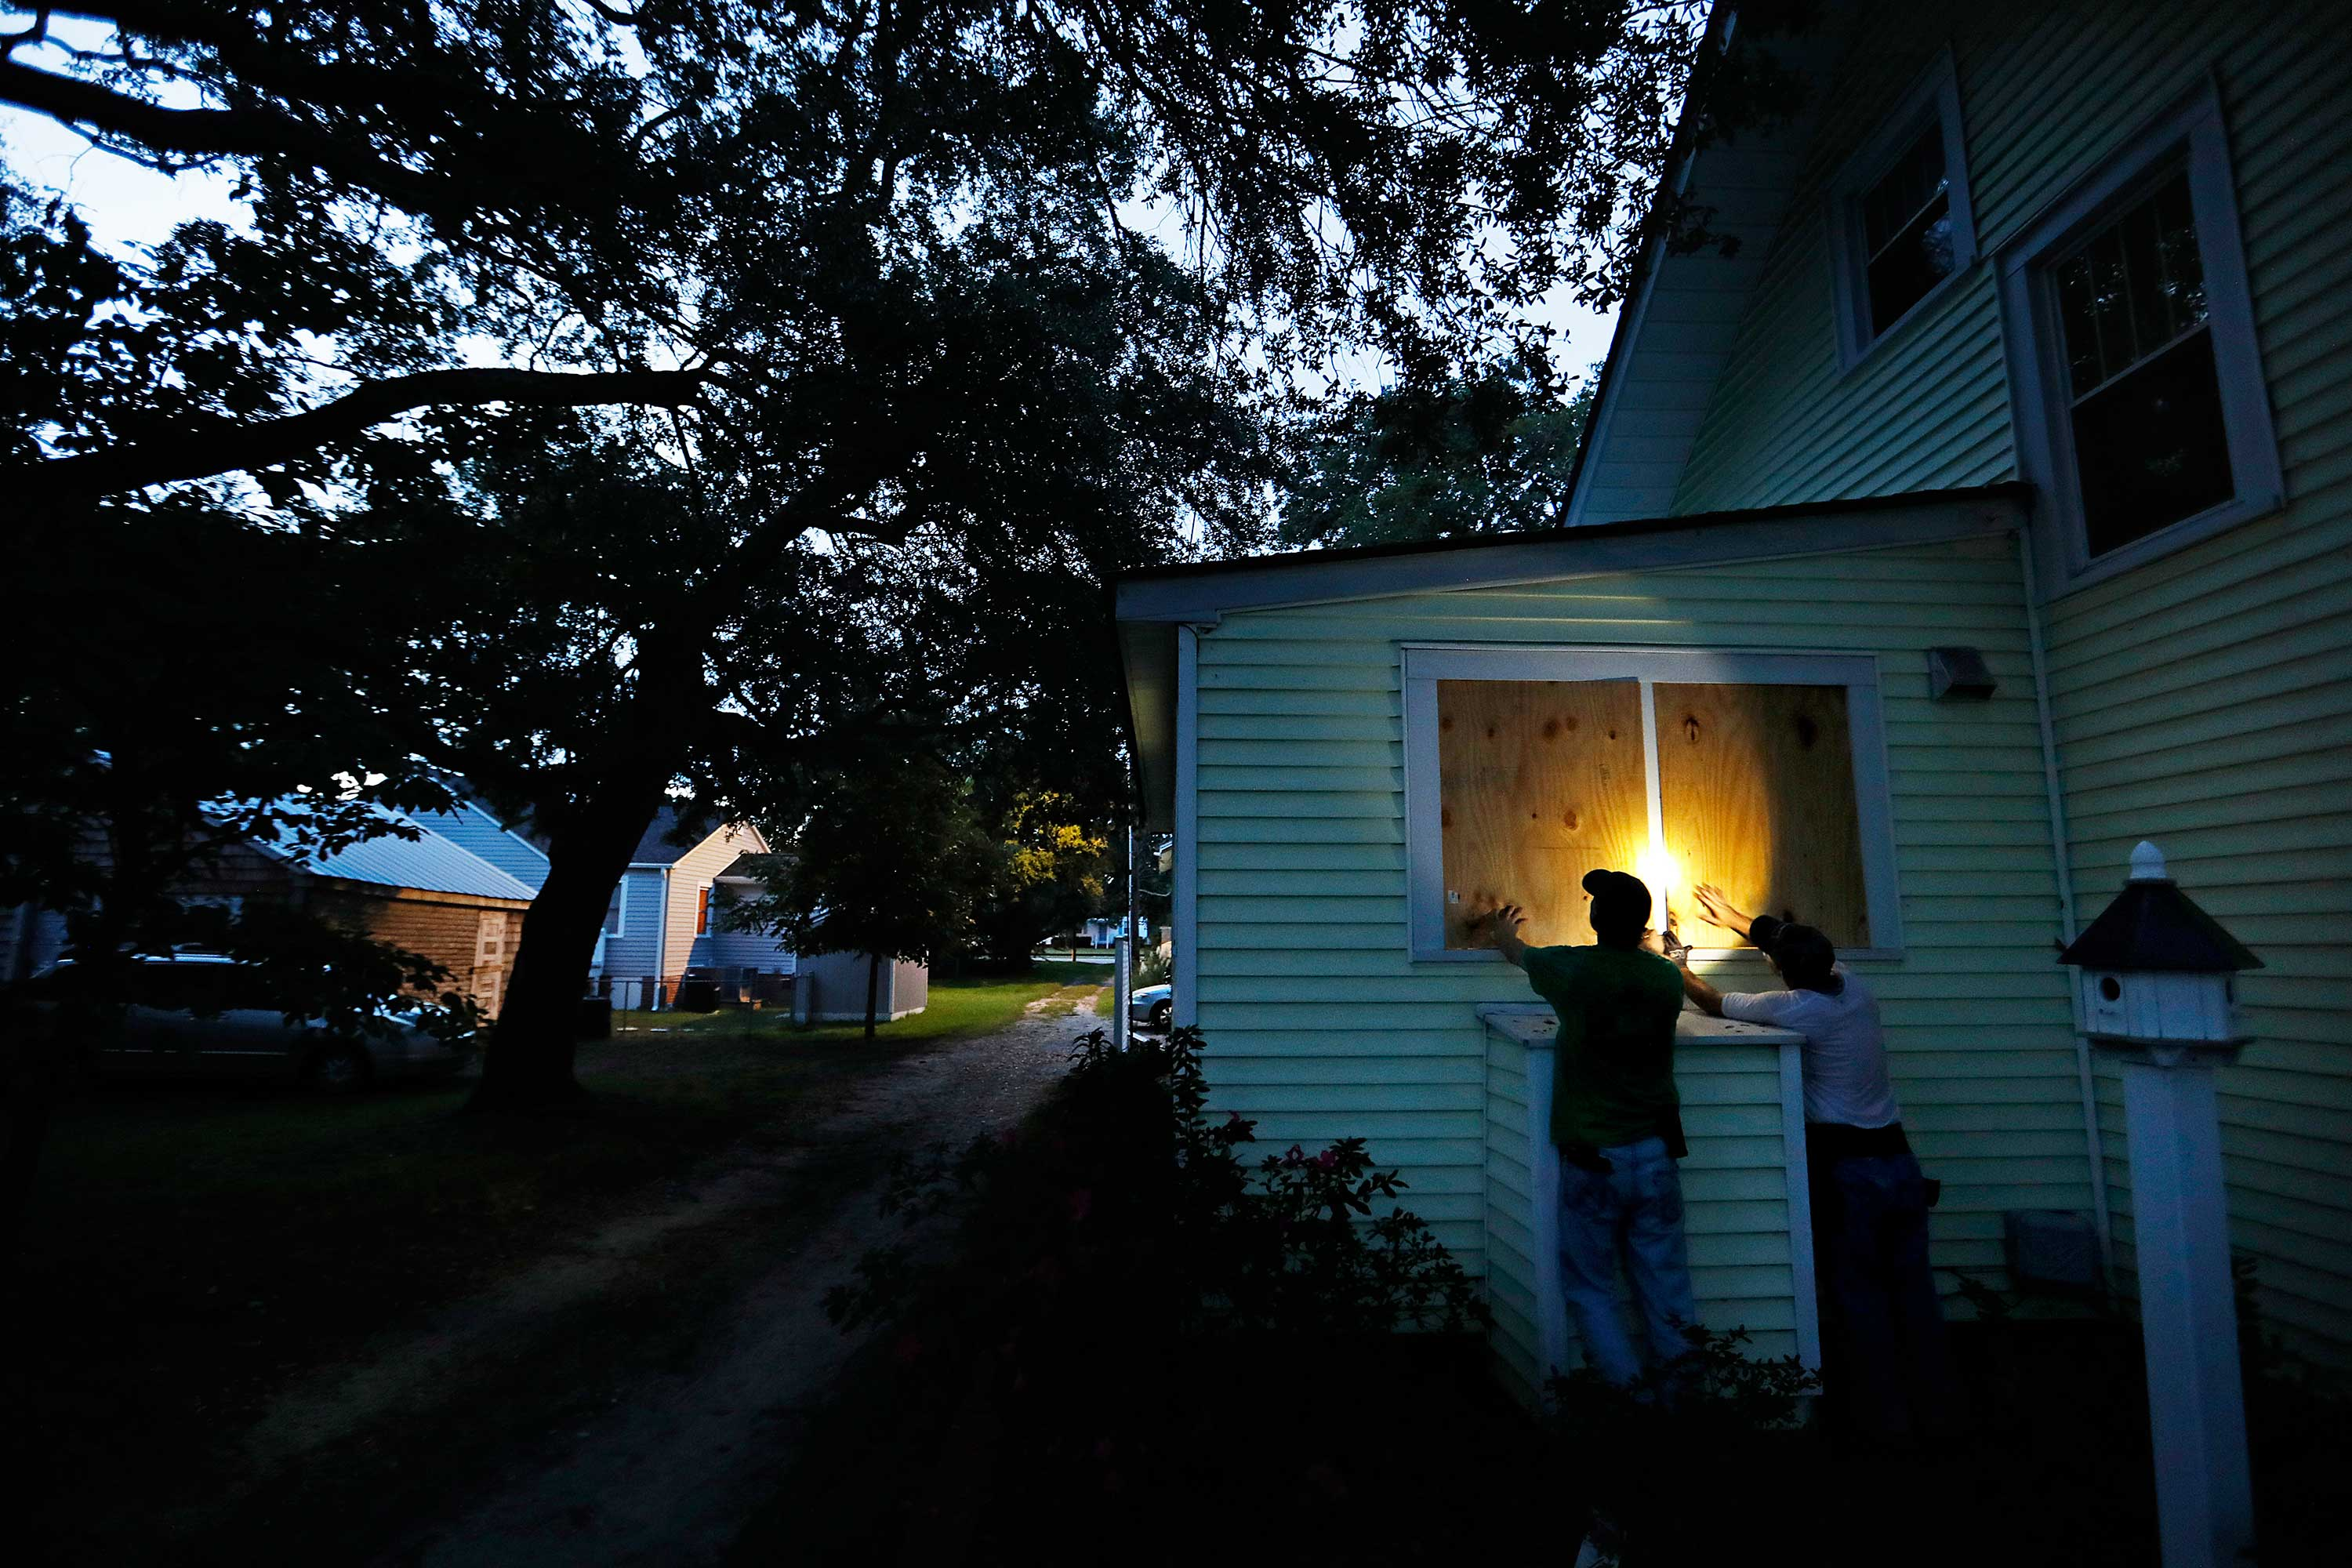 <div class='meta'><div class='origin-logo' data-origin='none'></div><span class='caption-text' data-credit='David Goldman/AP Photo'>Russell Meadows, left, helps neighbor Rob Muller board up his home ahead of Hurricane Florence in Morehead City, N.C., Tuesday, Sept. 11, 2018.</span></div>